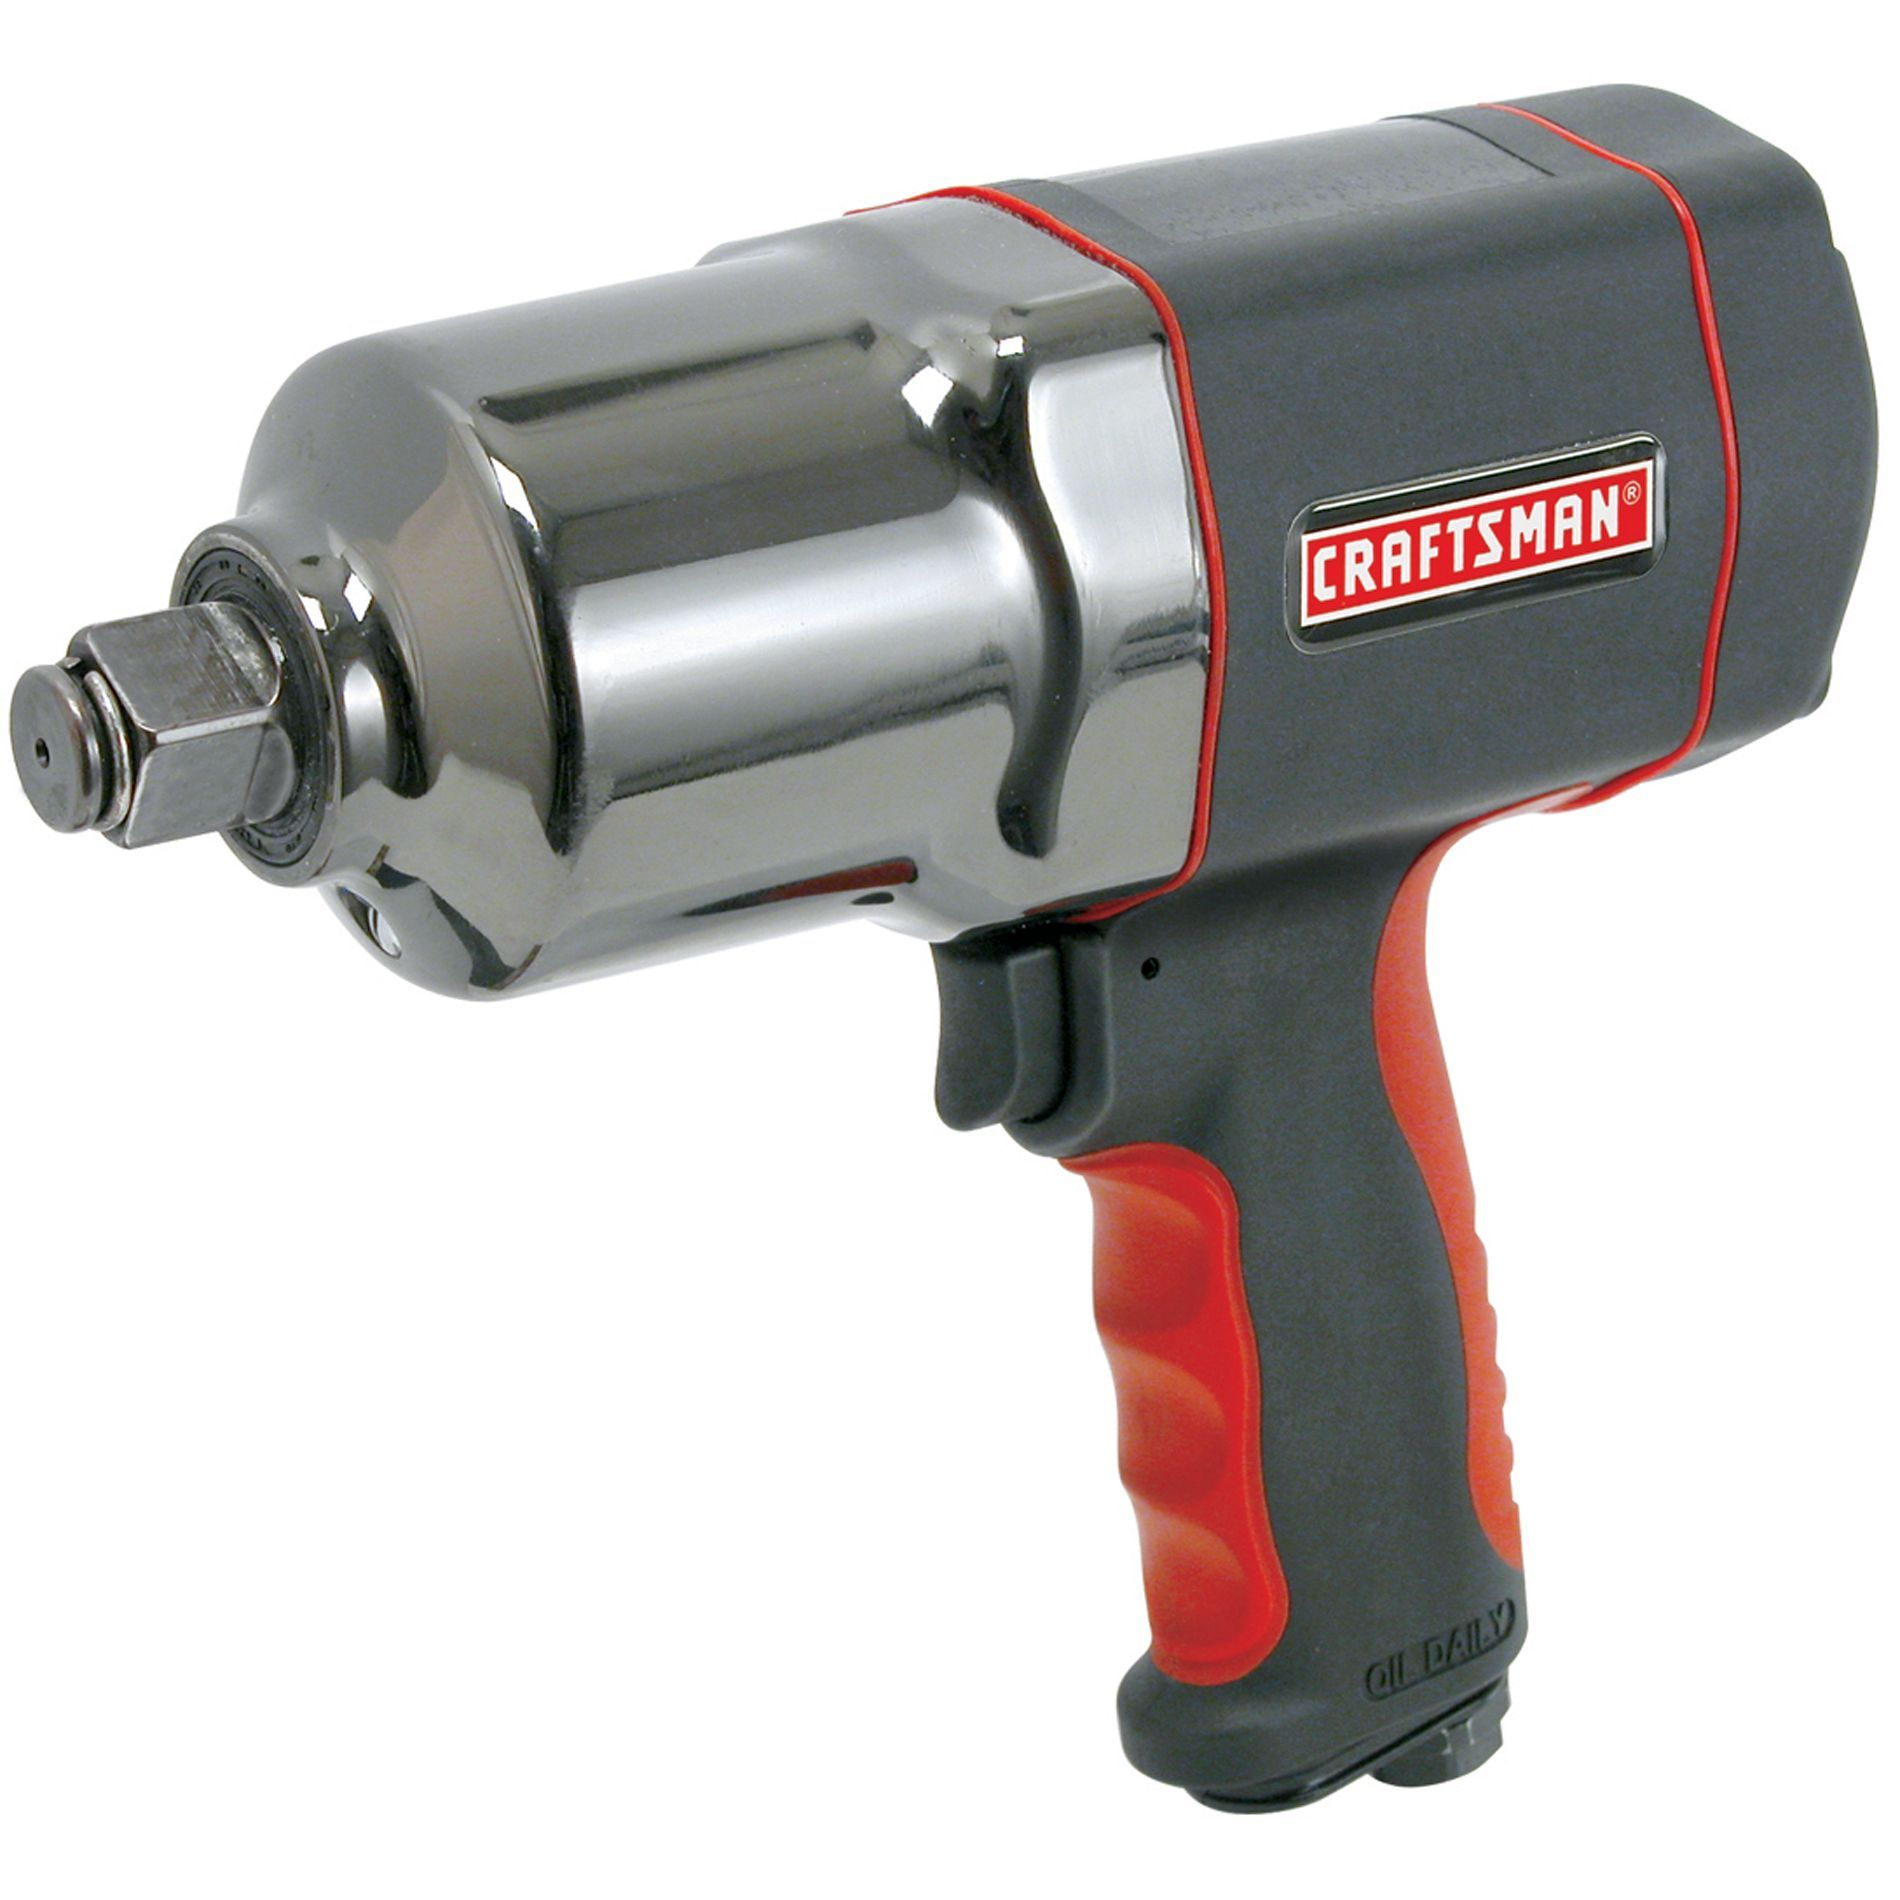 Best Air Impact Wrenches For Home Use 2020